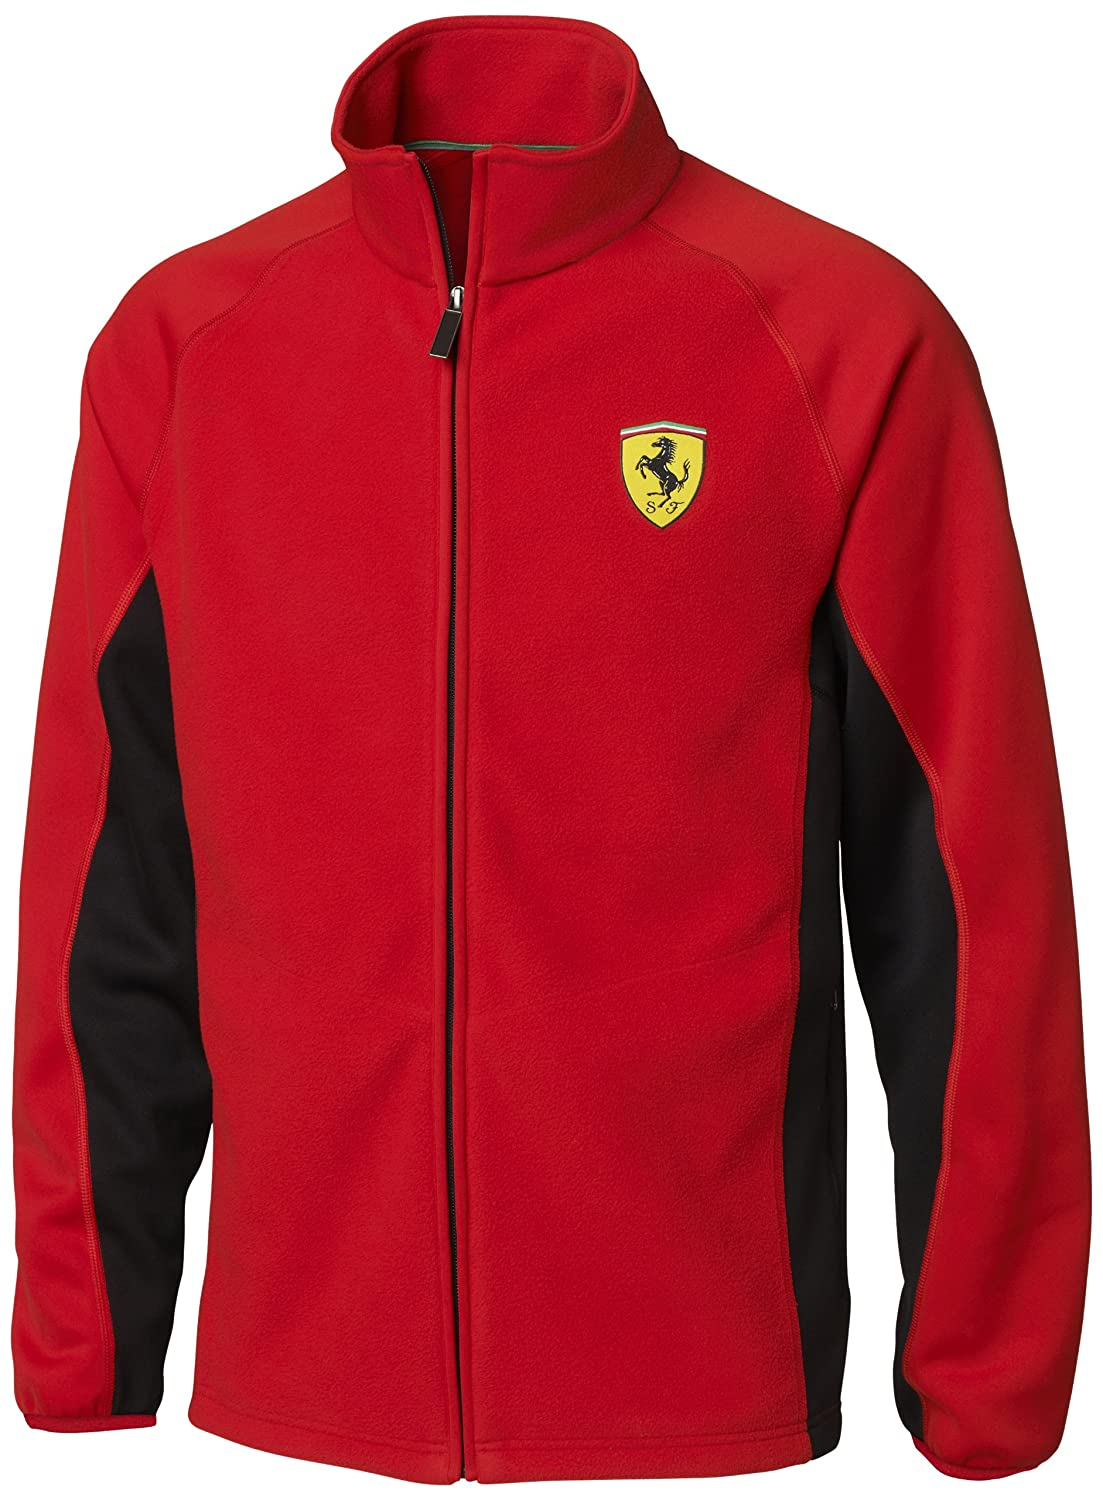 jacket product red buy track puma ferrari